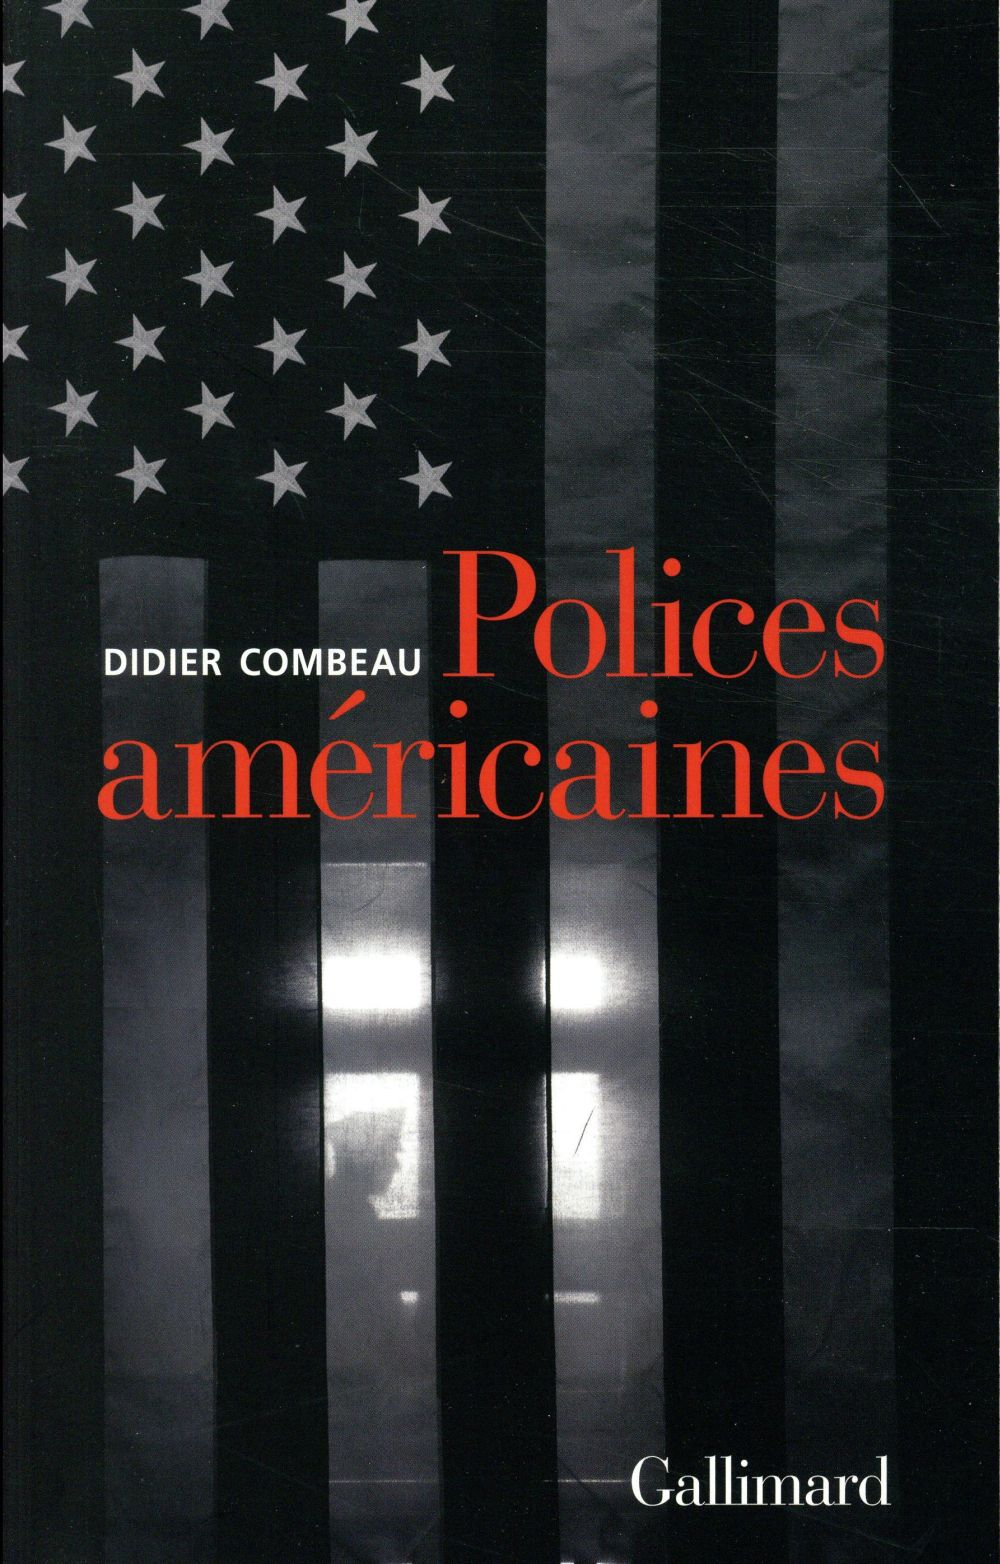 Polices américaines